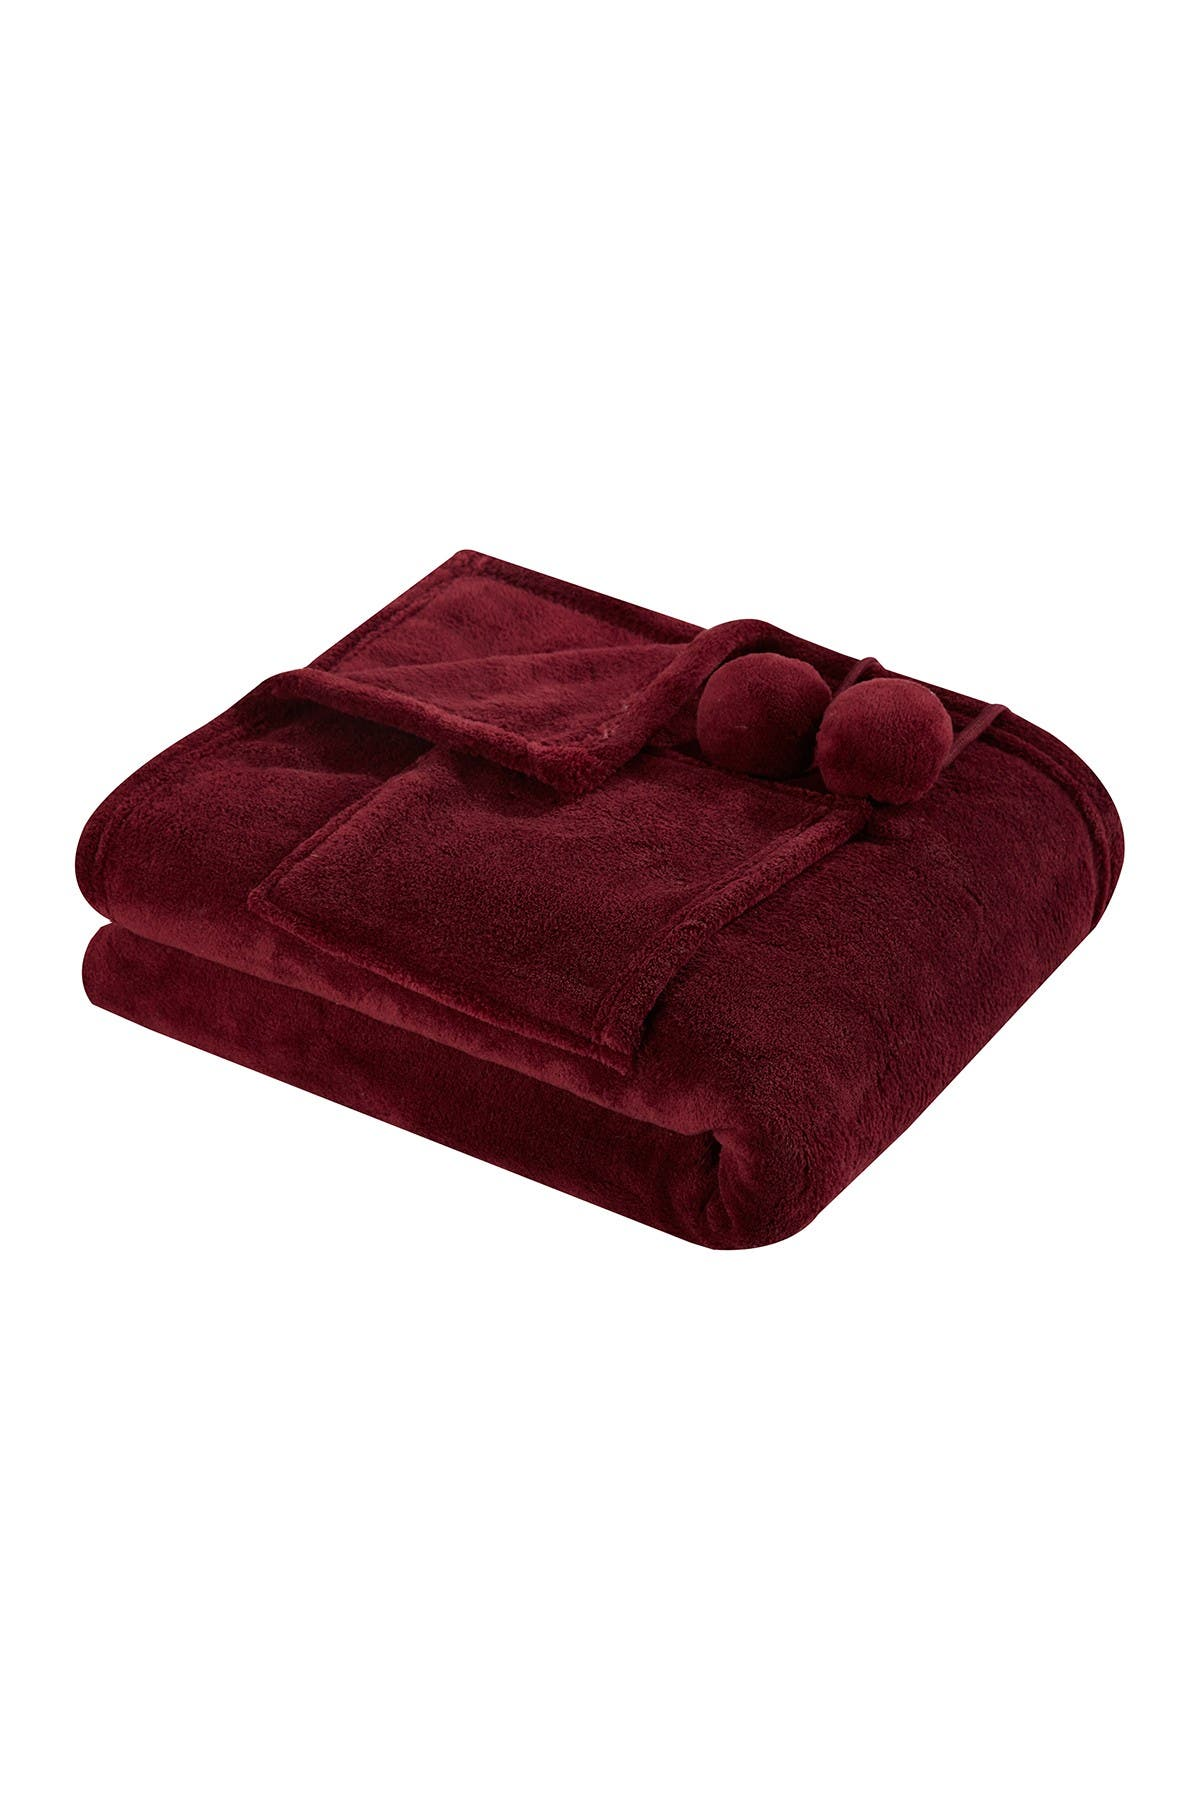 Image of Chic Home Bedding Bruin Soft Plush Fleece Wrap - Burgundy